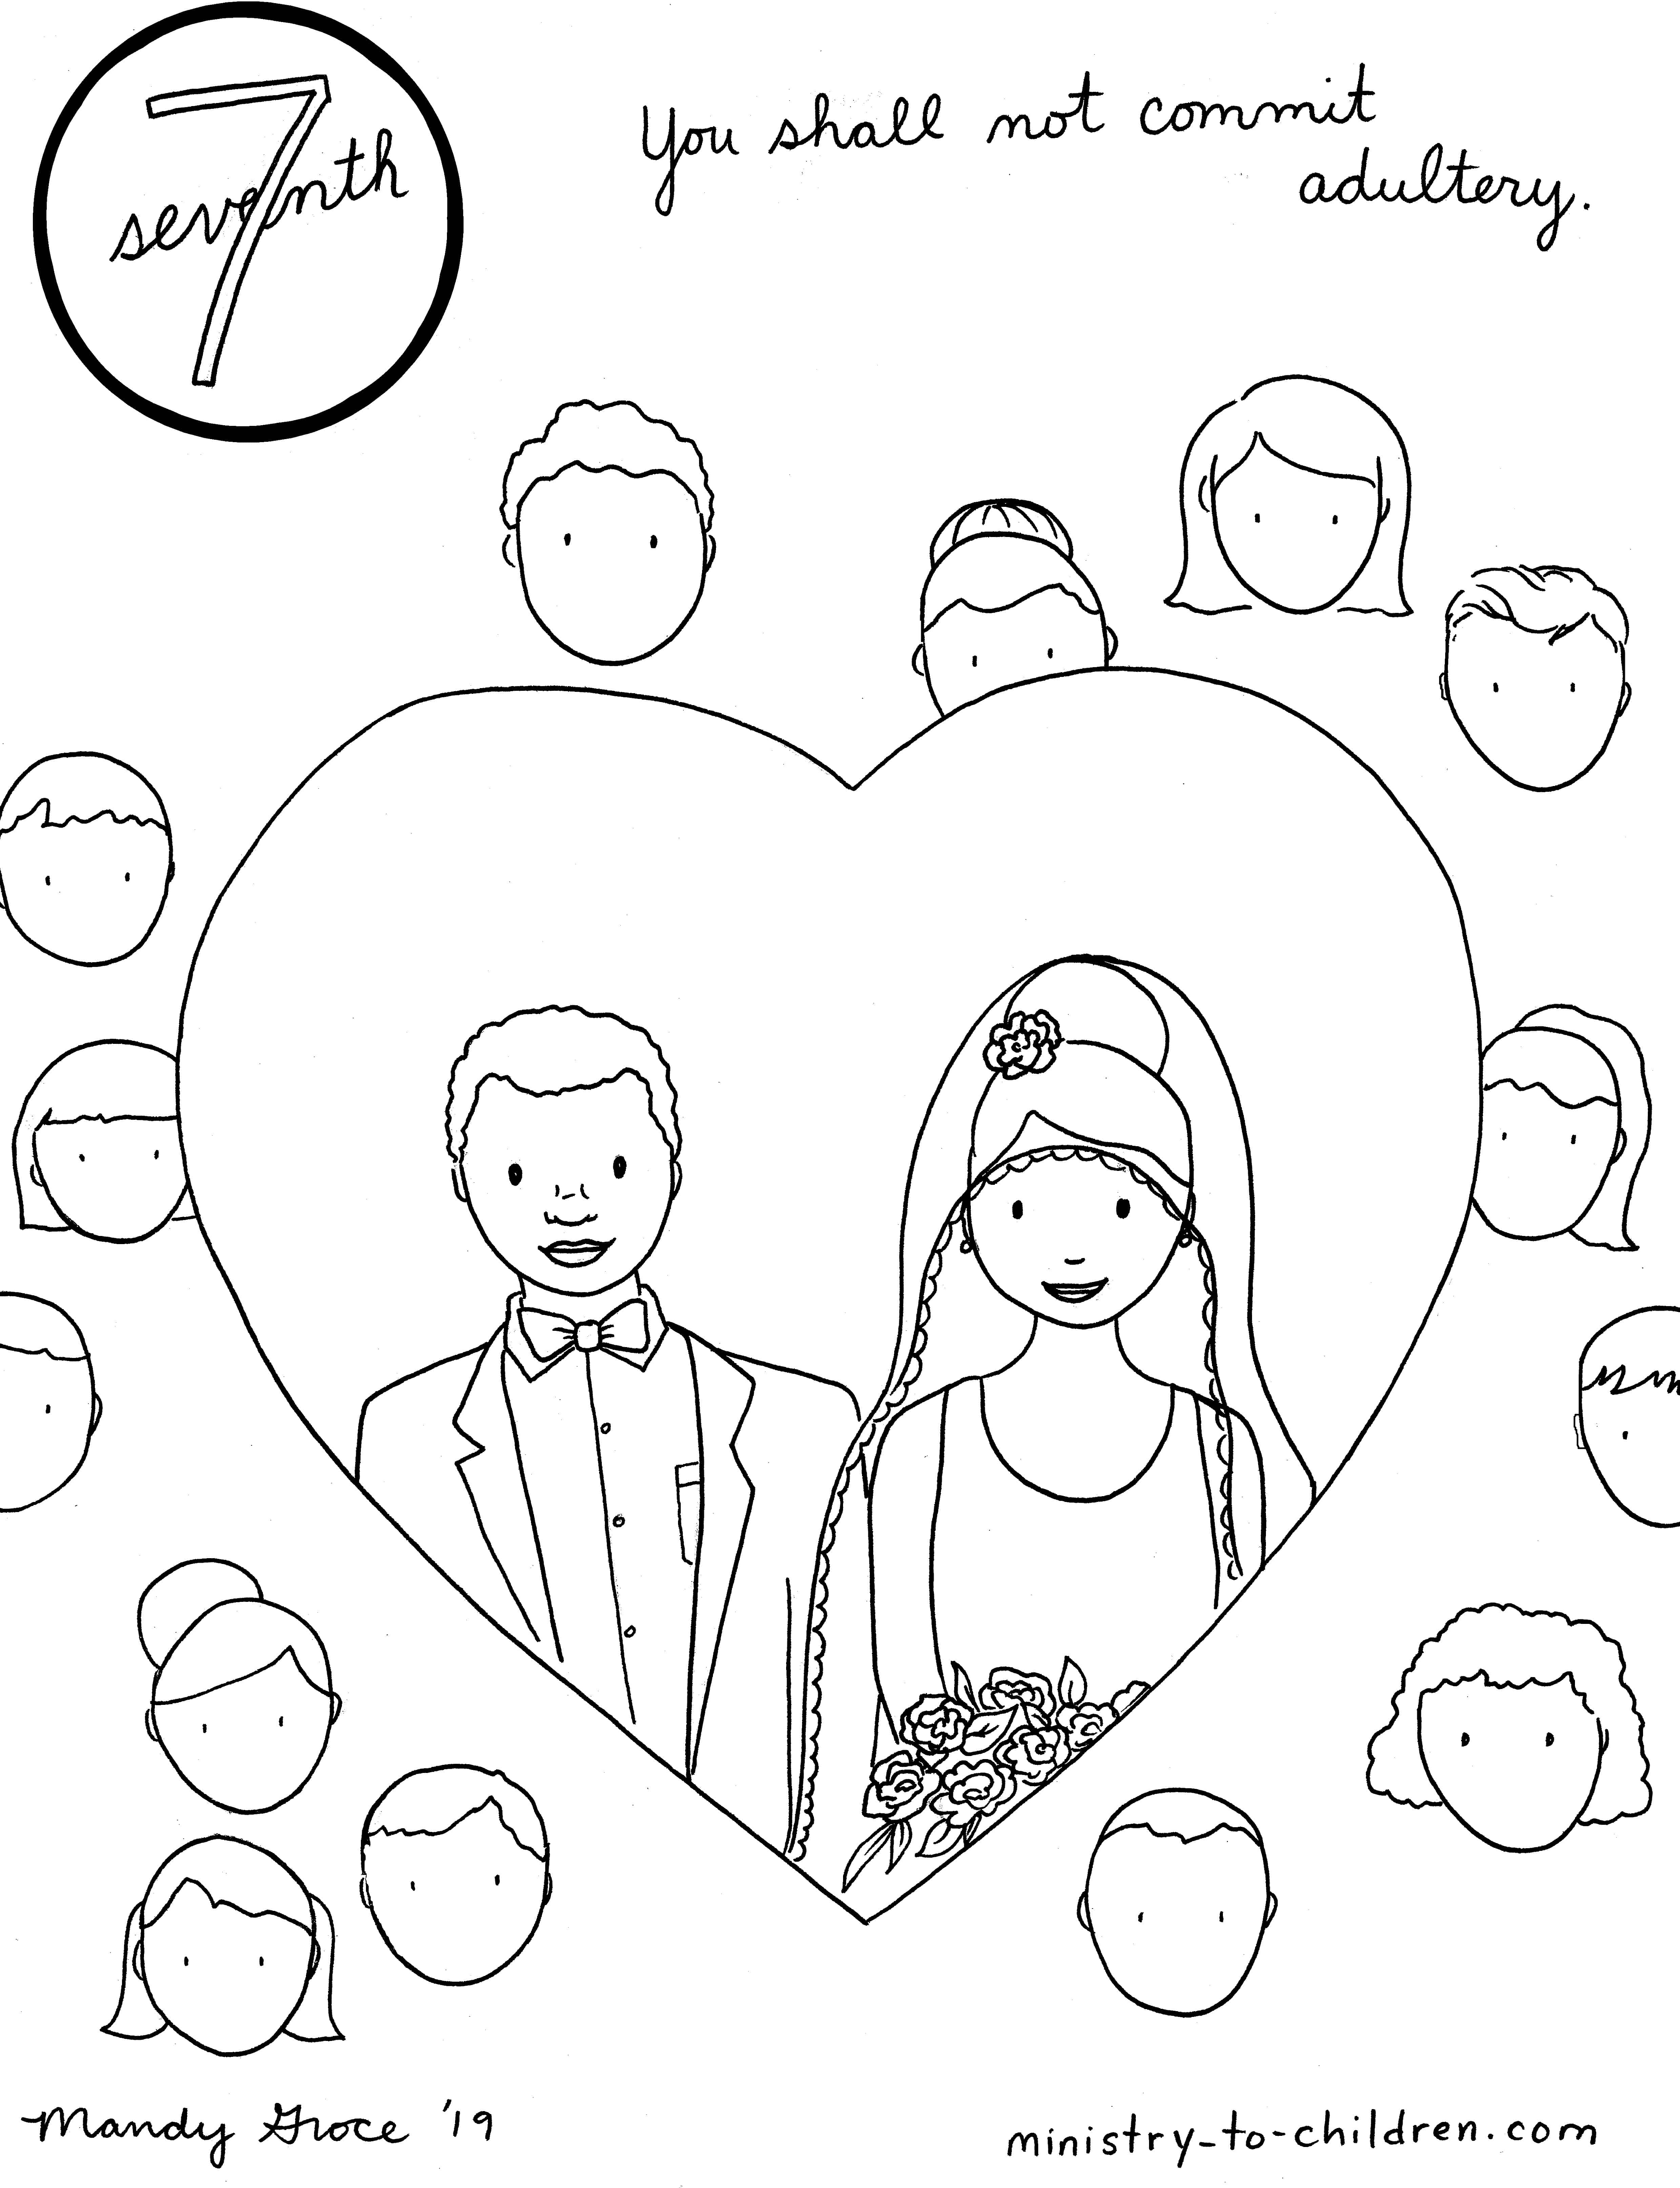 7th Commandment Coloring Page Not Commit Adultery